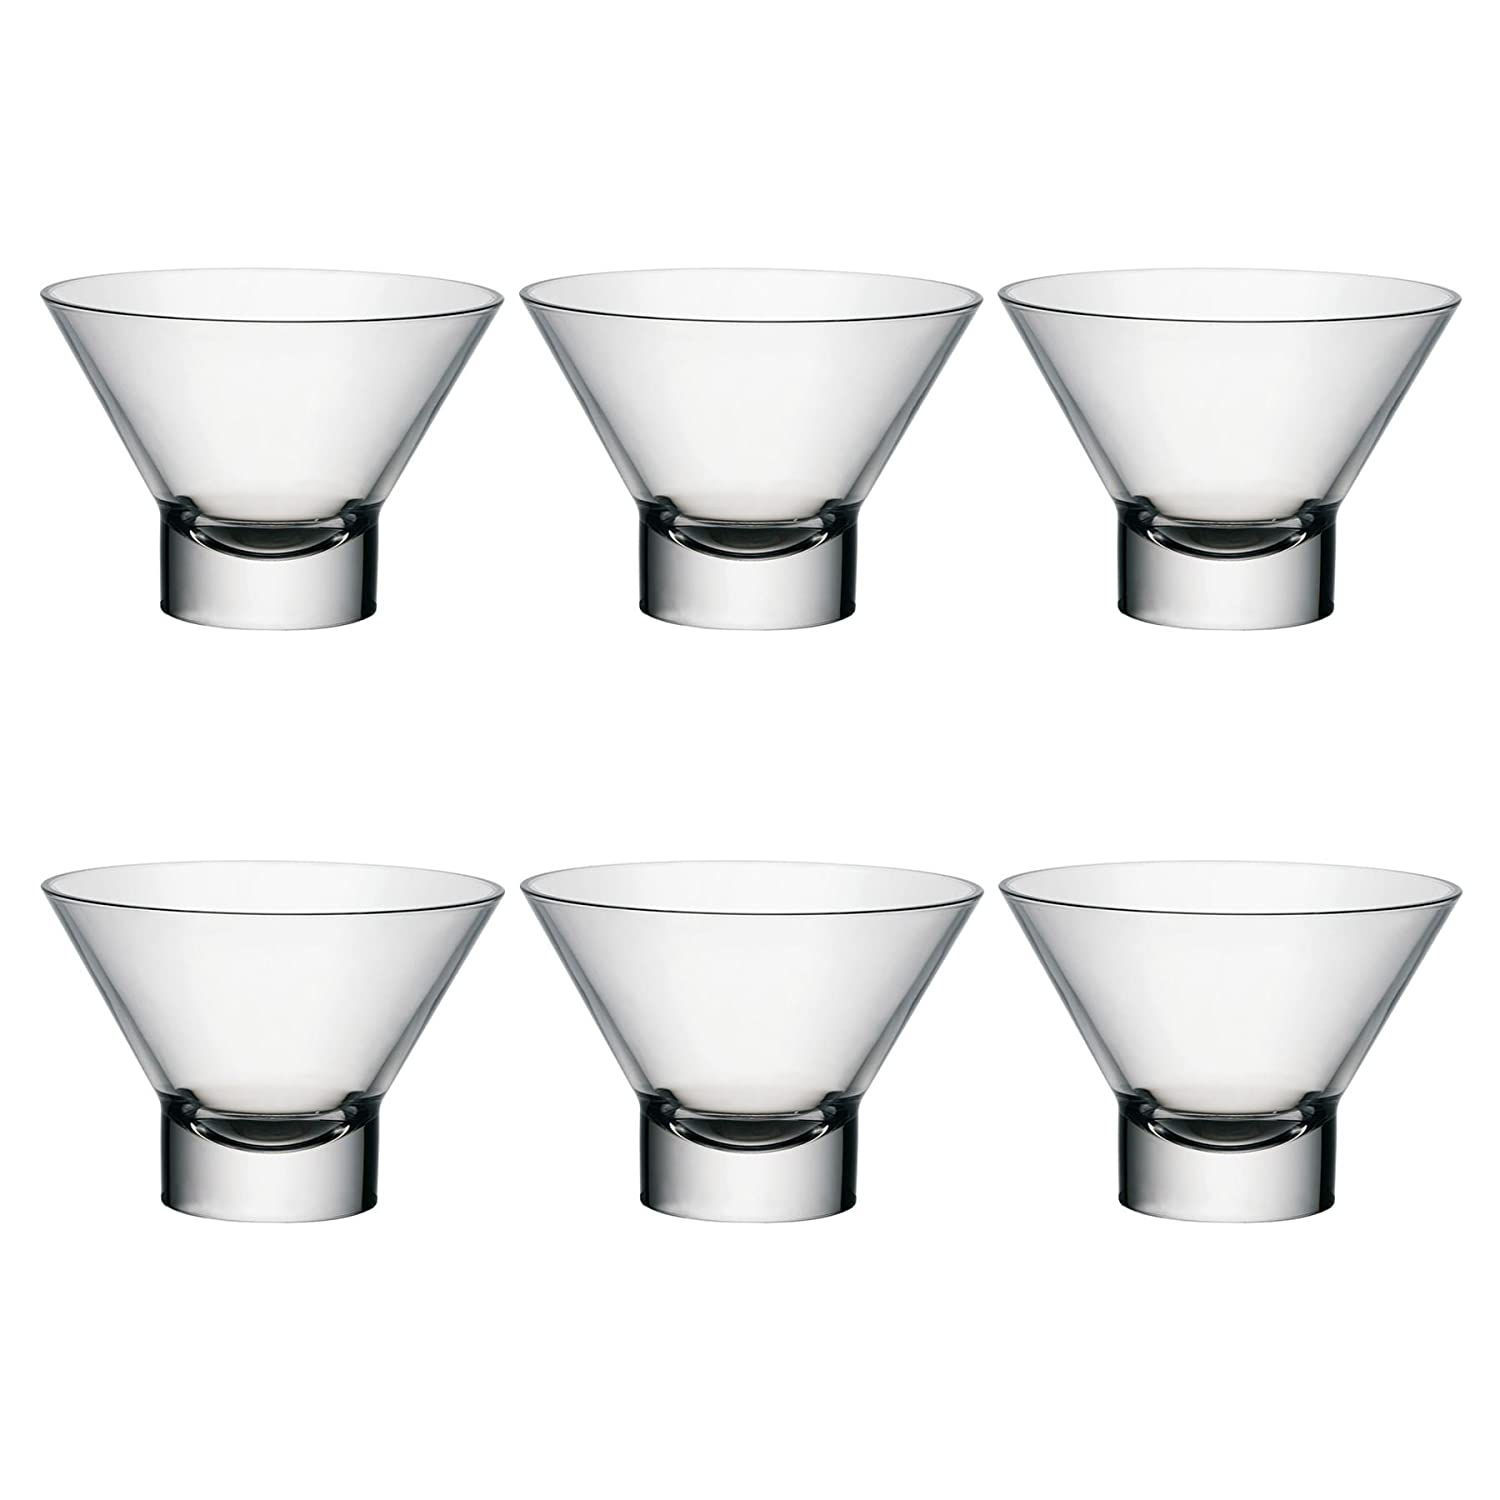 Bormioli Rocco Ypsilon Dessert Food Dinner Bowls 130mm - Pack of 6